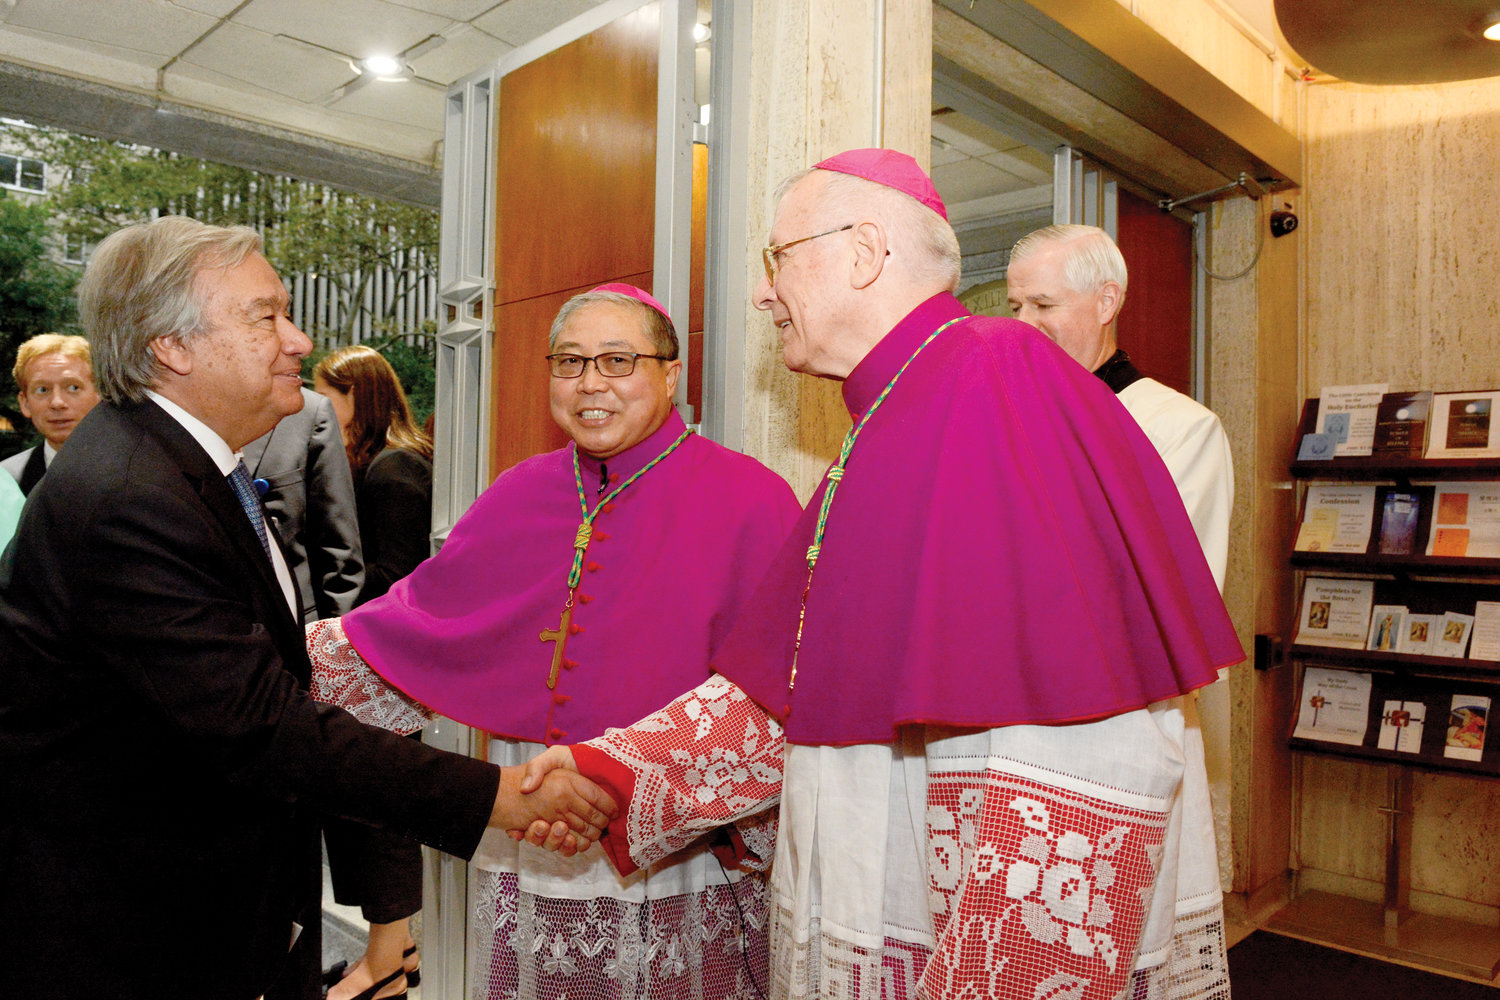 António Guterres, Secretary-General of the United Nations, greets Bishop Paul Hinder, O.F.M. Cap., apostolic vicar of Southern Arabia, right, and Archbishop Bernardito Auza, apostolic nuncio, permanent observer of the Holy See to the United Nations, middle, before the Sept. 16 Prayer Service on the Vigil of the Opening of the 74th Session of the United Nations General Assembly at Holy Family Church in Manhattan. Behind them is Father Gerald Murray, pastor of Holy Family.